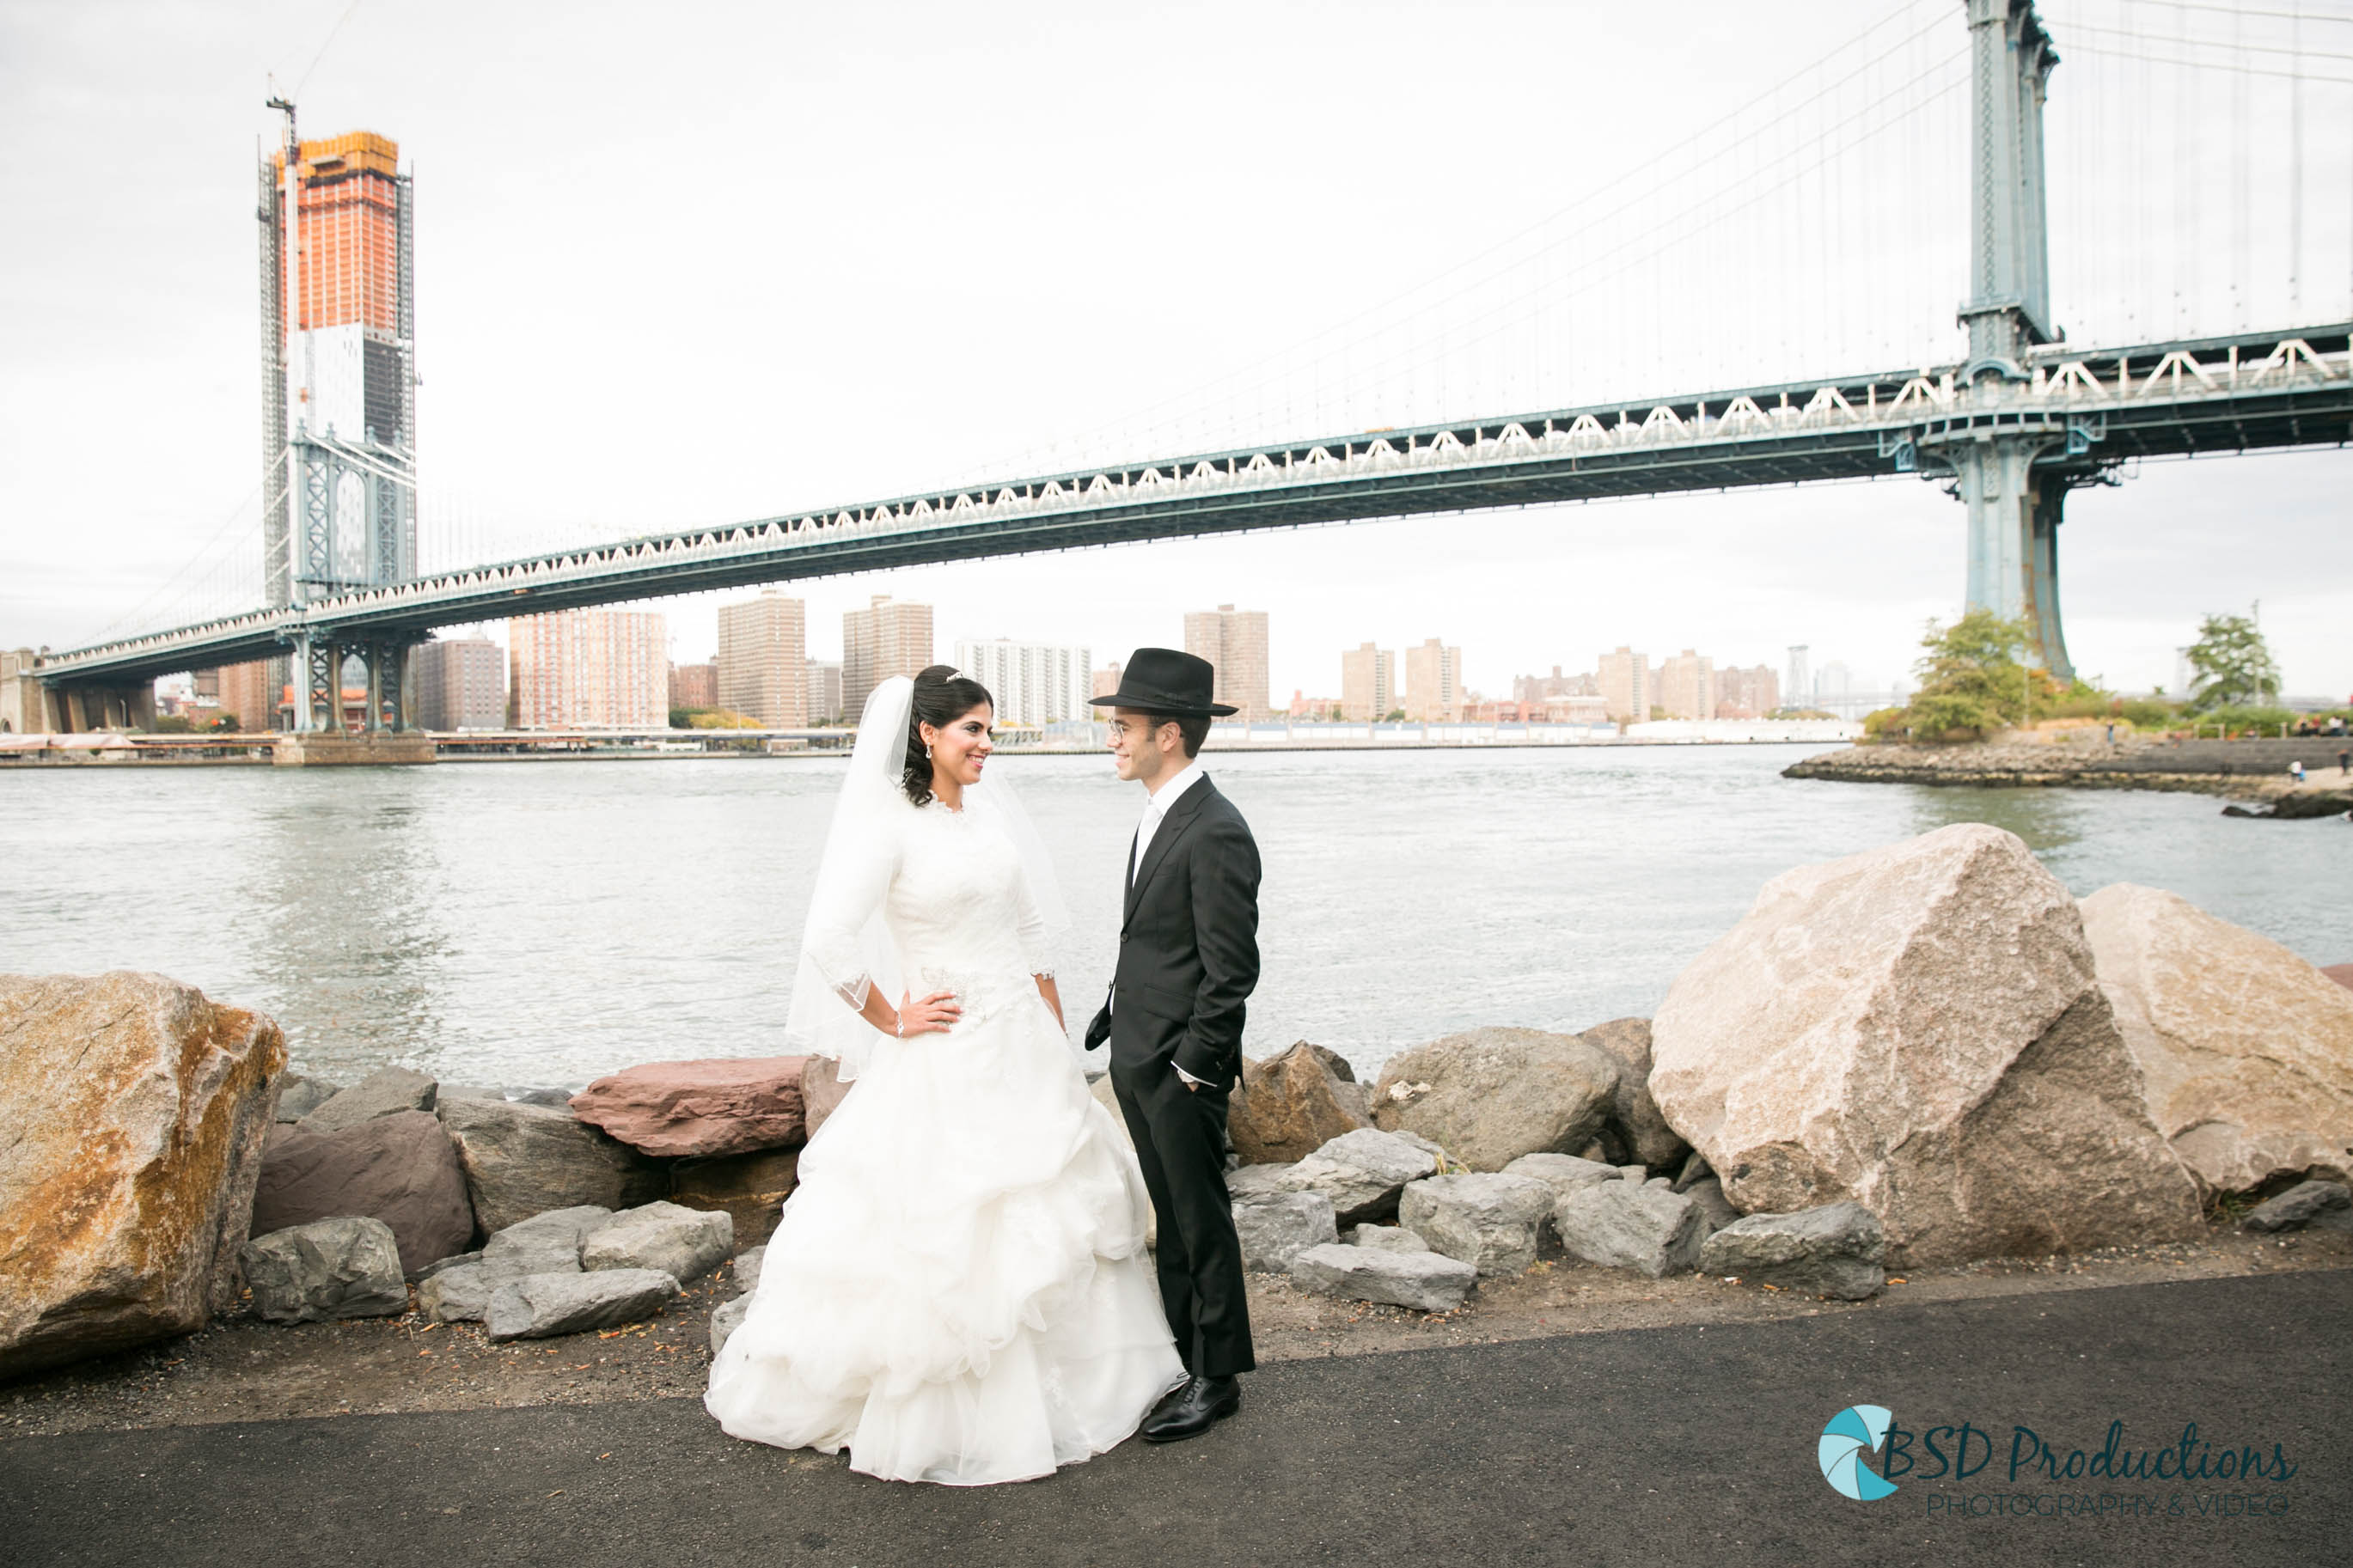 UH5A0031 Wedding – BSD Productions Photography